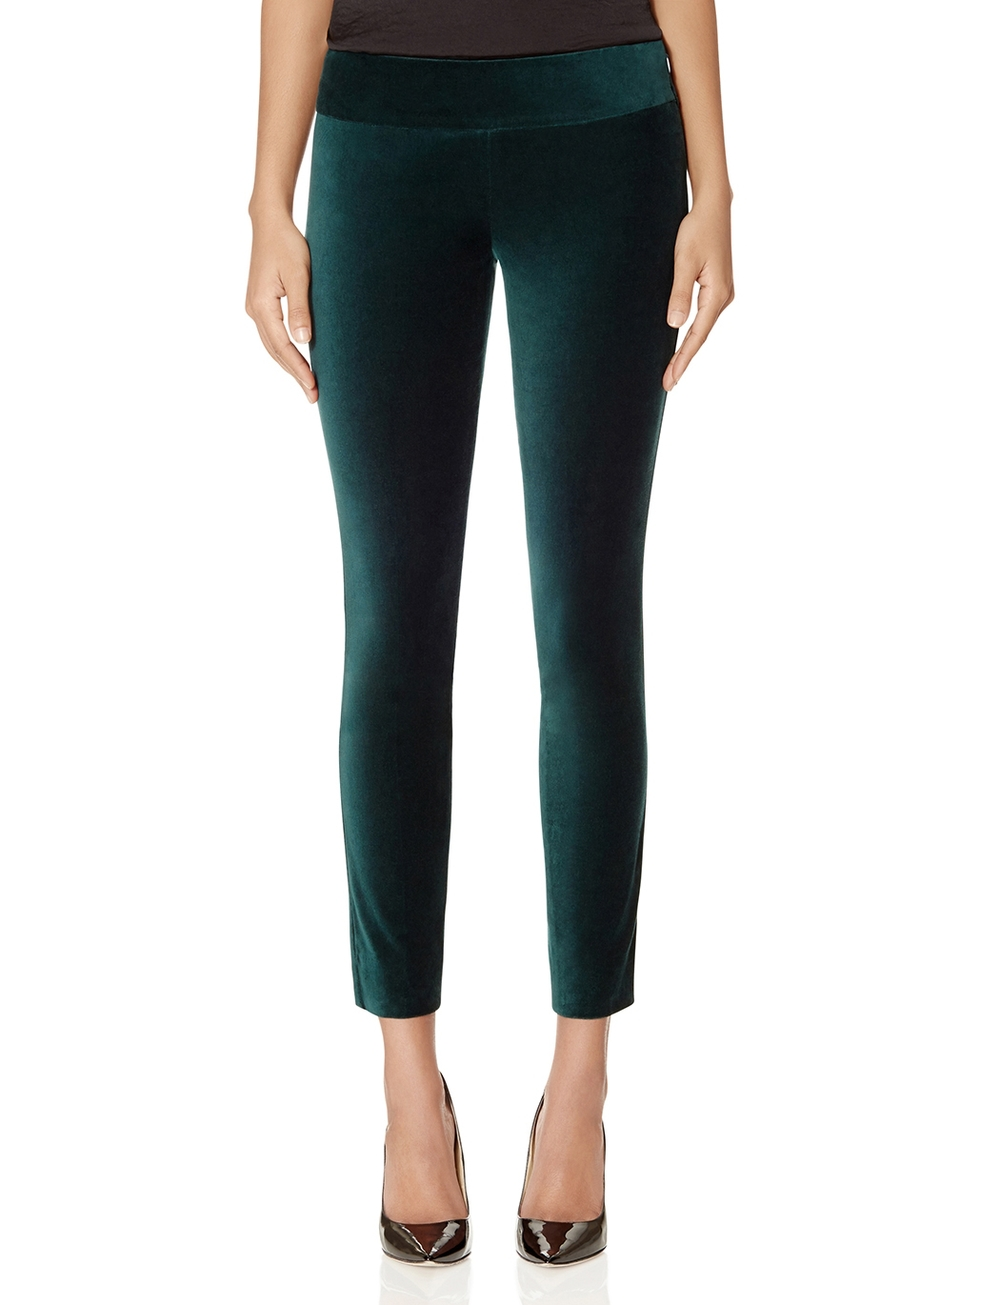 Drew velvet skinny pant. Available in multiple colors. The Limited. Was:$69.95 Now: $49.97.